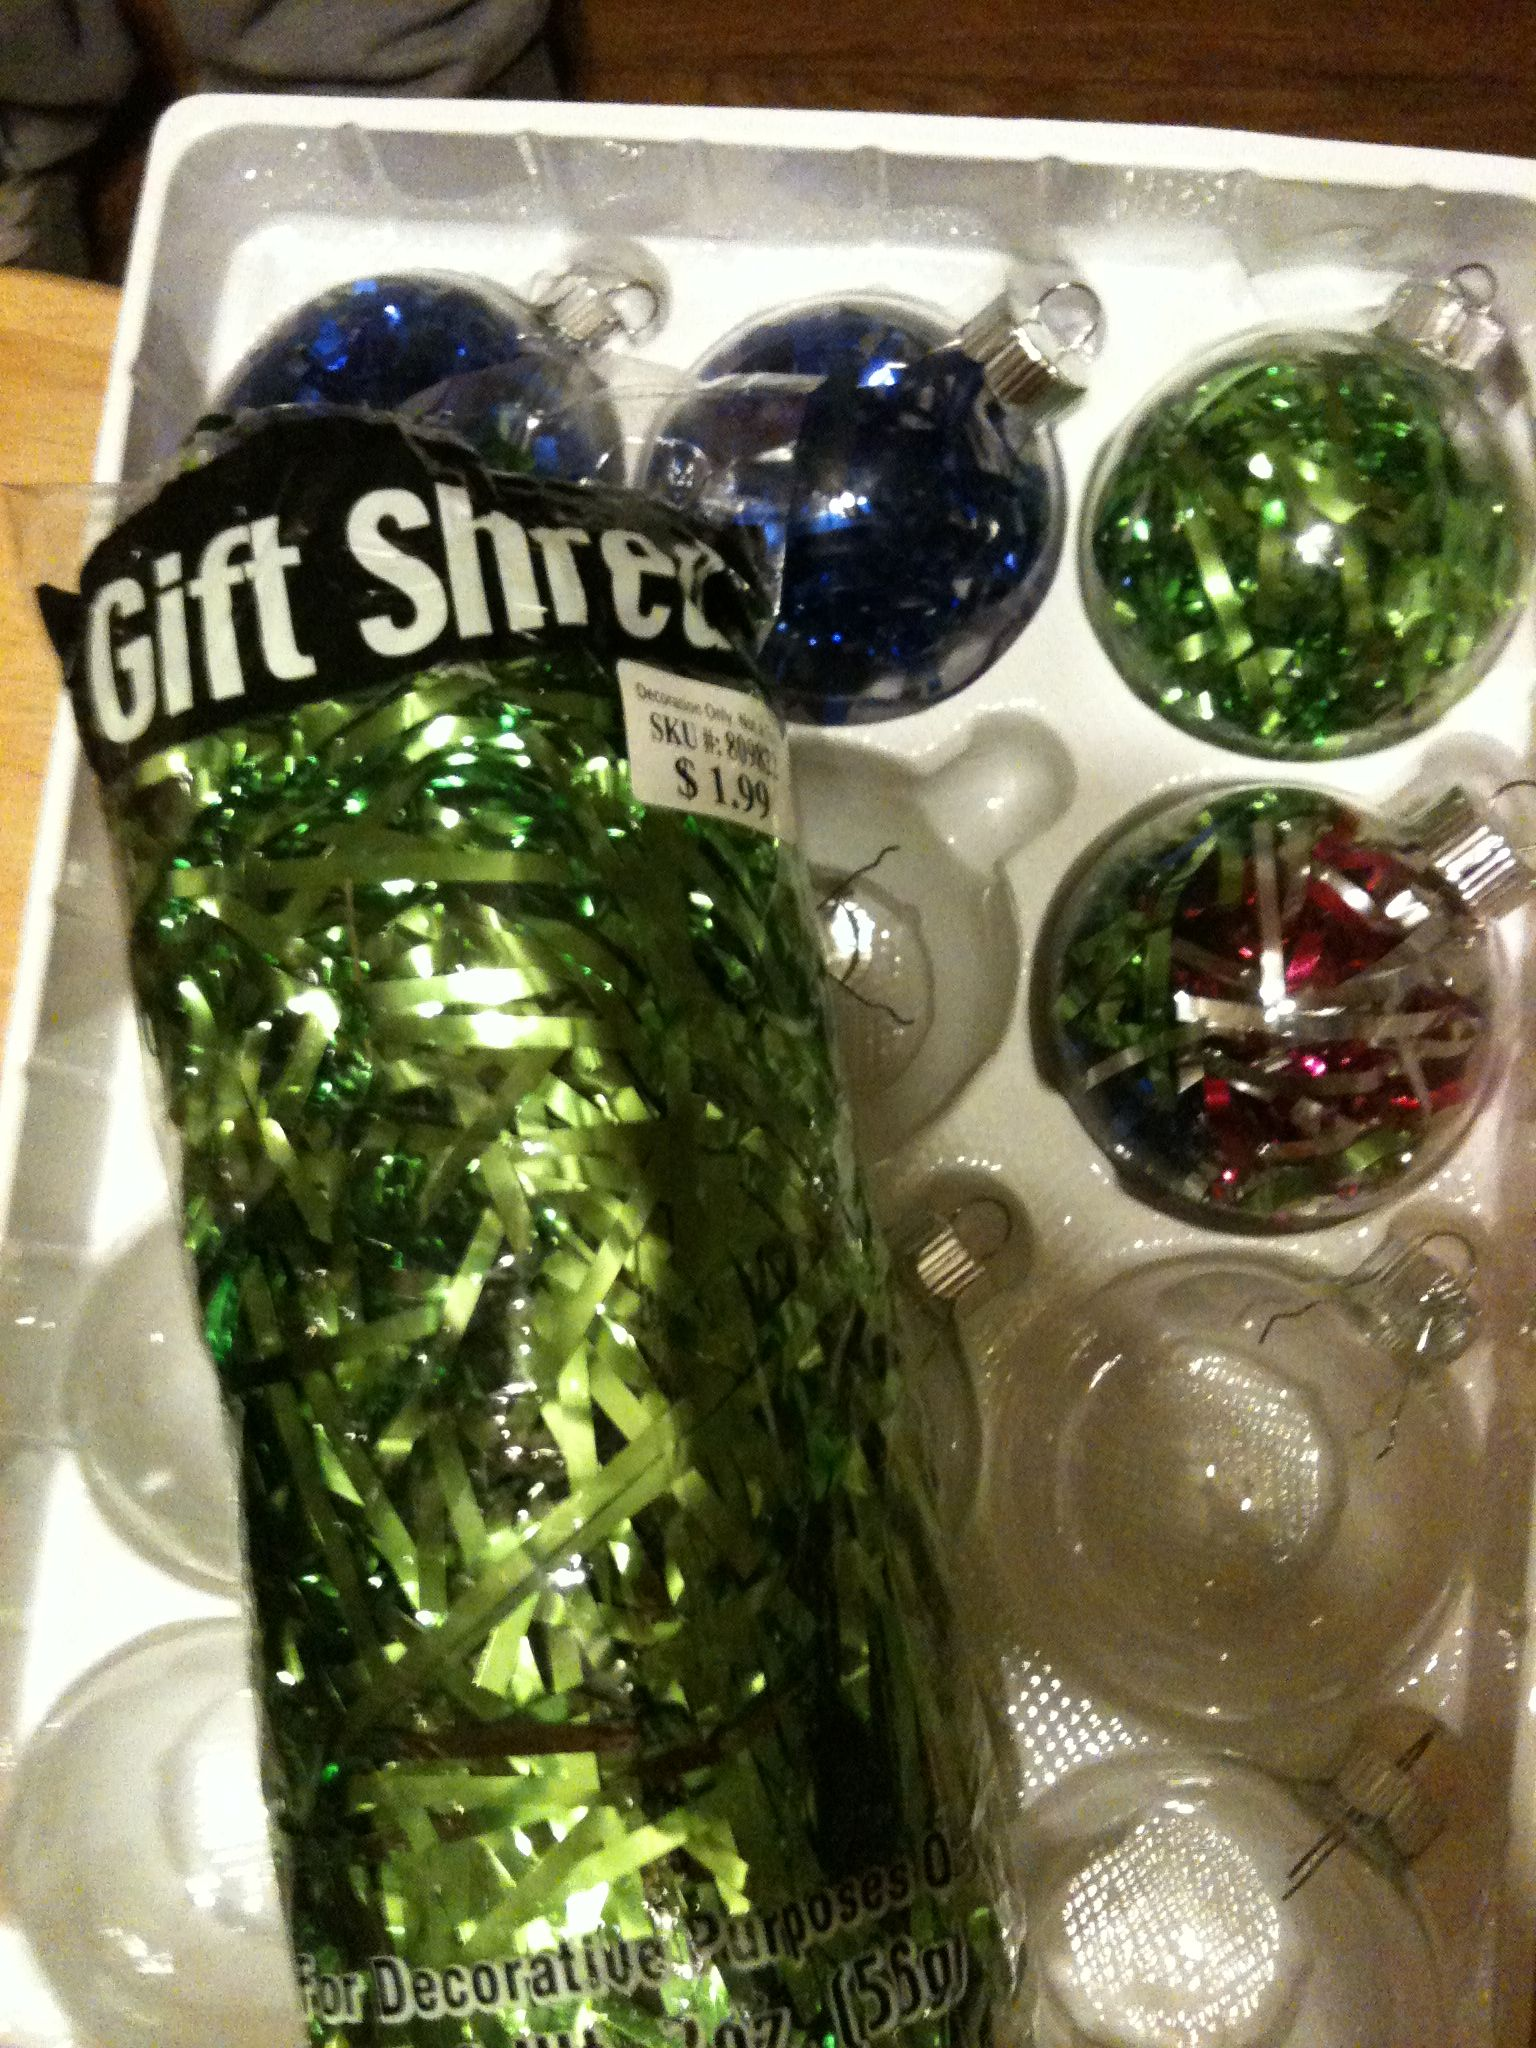 Christmas Tinsel Transparent.Clear Ornaments Filled With Gift Shredded Colorful Tinsel